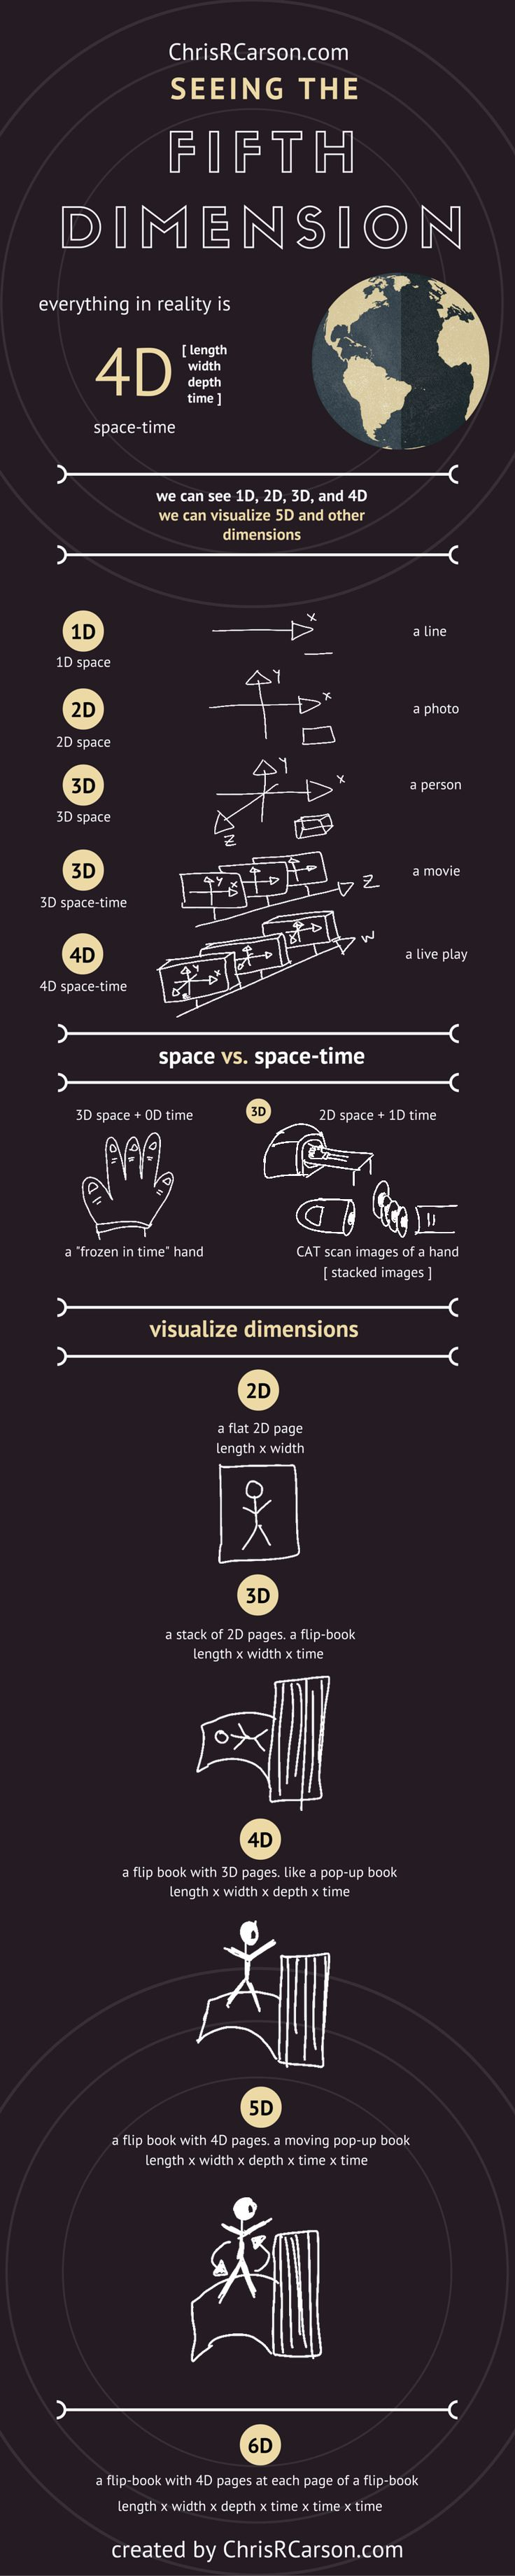 Einstein said if you can't explain it to a six year old, you don't understand it yourself. And that sums up every person who's ever talked about any kind of dimensions, 3d, 4d, string theory, and so on. They talk with contradictions and have explanations that no-one really understands. This infographic from  ChrisRCarson will help clear things up. Learn to tell the difference from reality and perceived reality. Learn to imagine 4d and 5d like you do 3d.